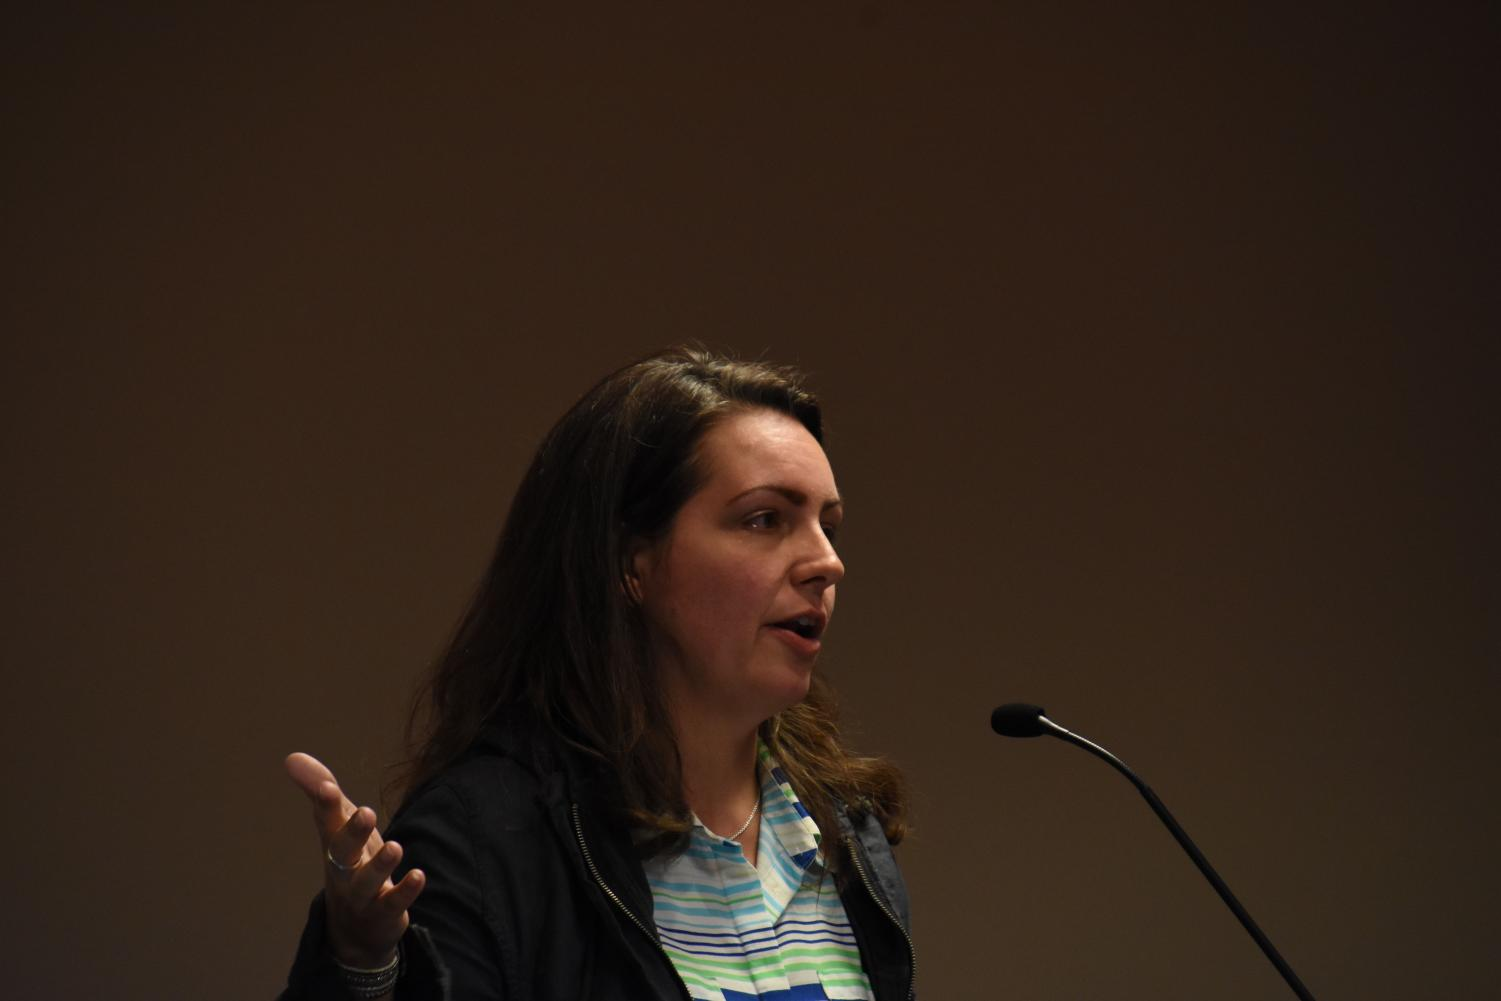 Parent Sarah Mutchler speaks at the School Board meeting March 25 during open forum. Mutchler said before a final vote, the questions from the community should be answered.